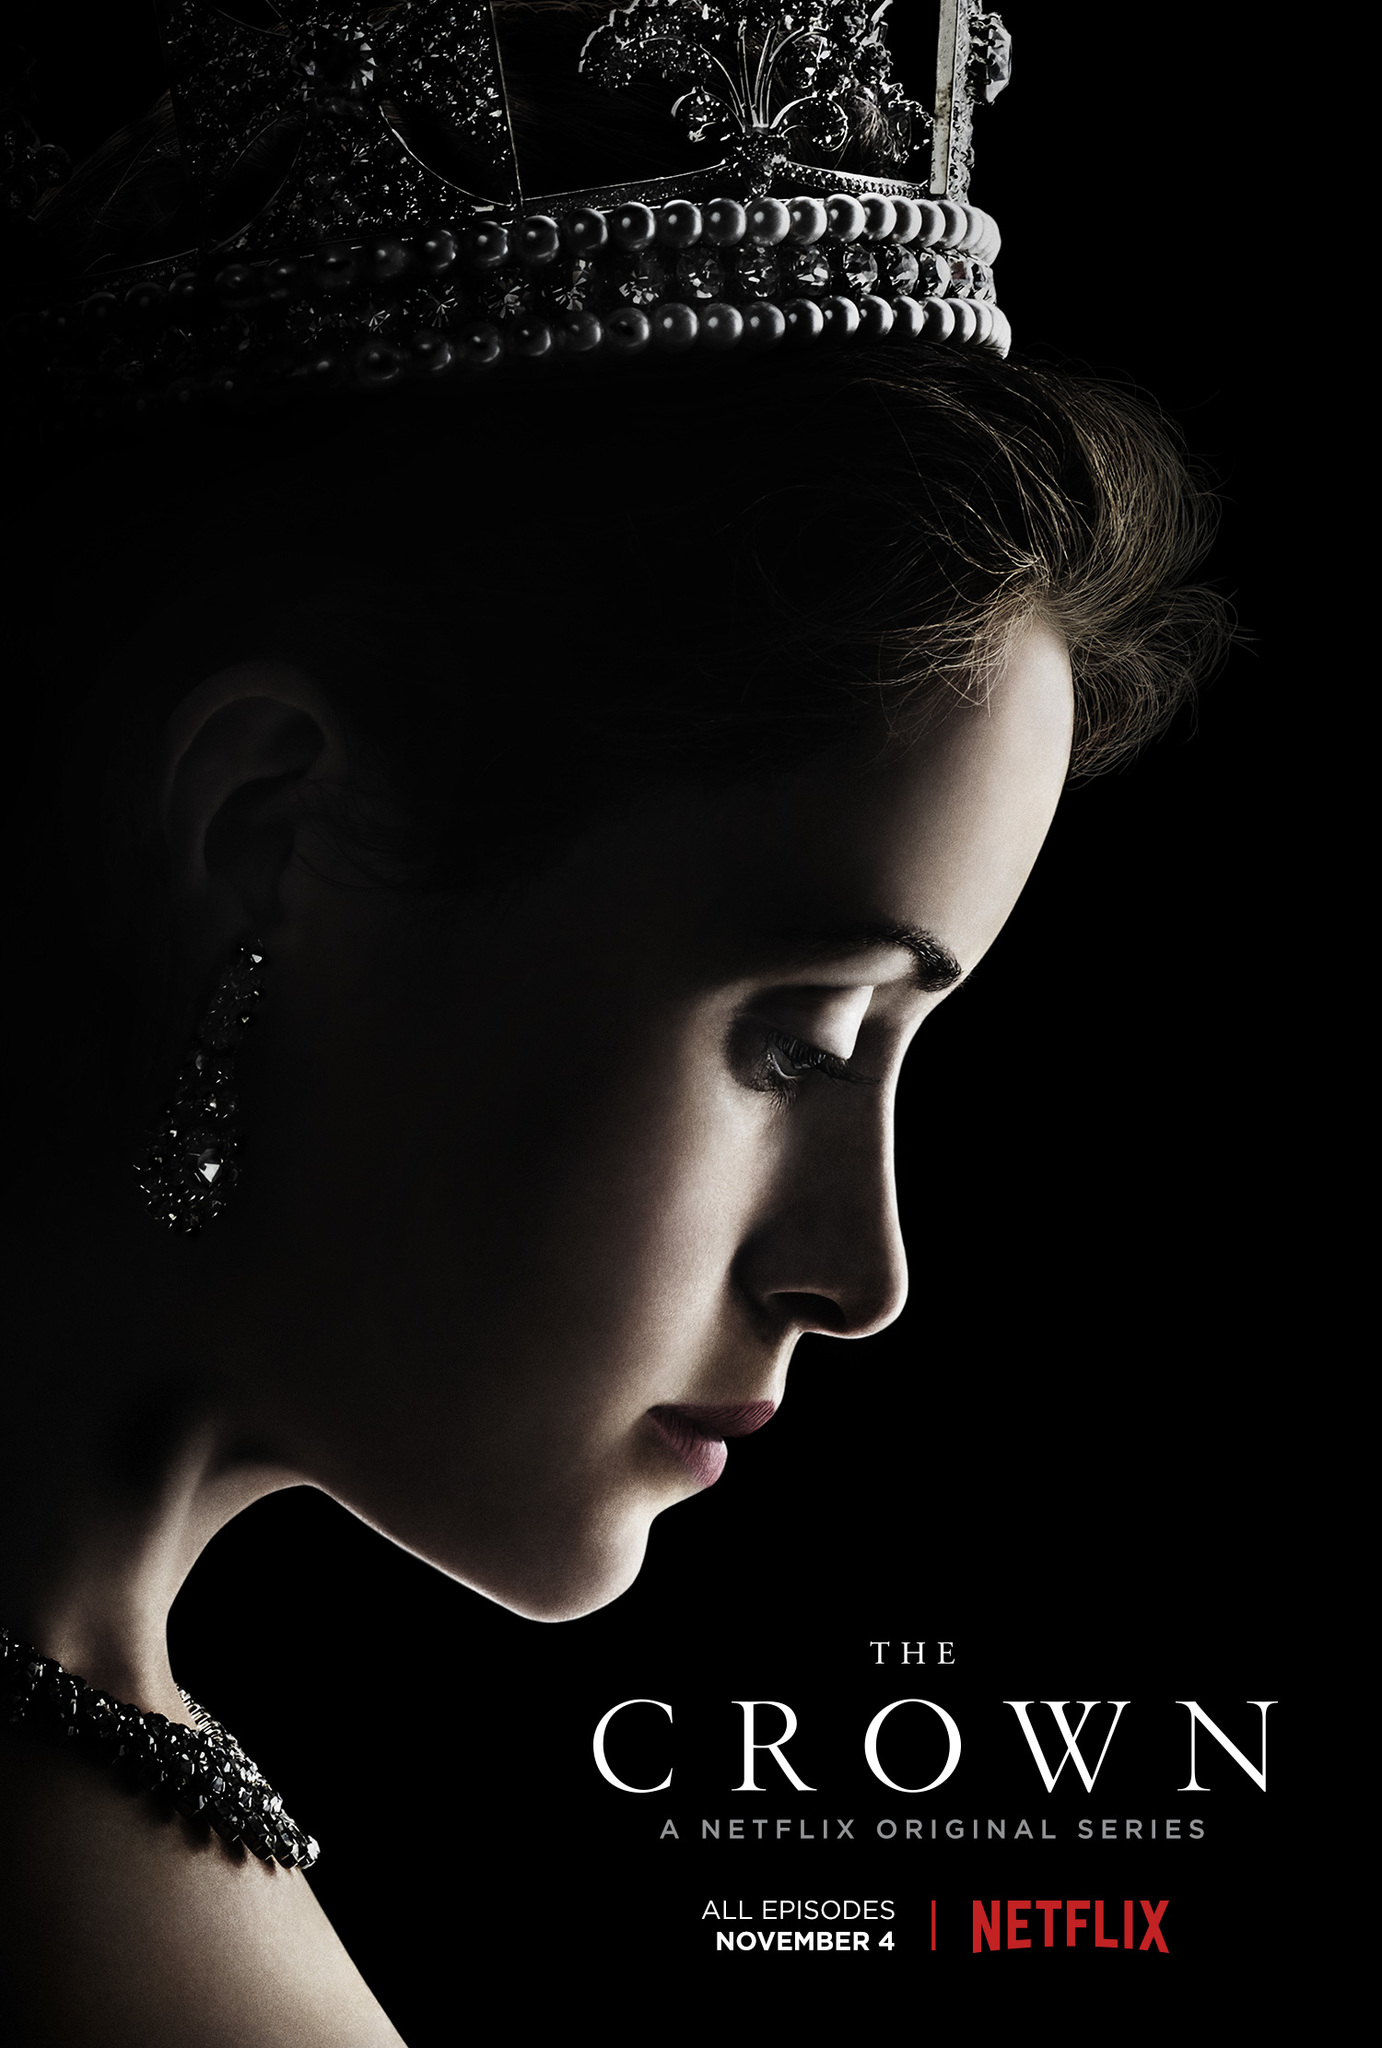 The Crown S01 EP10 Hindi Dubbed